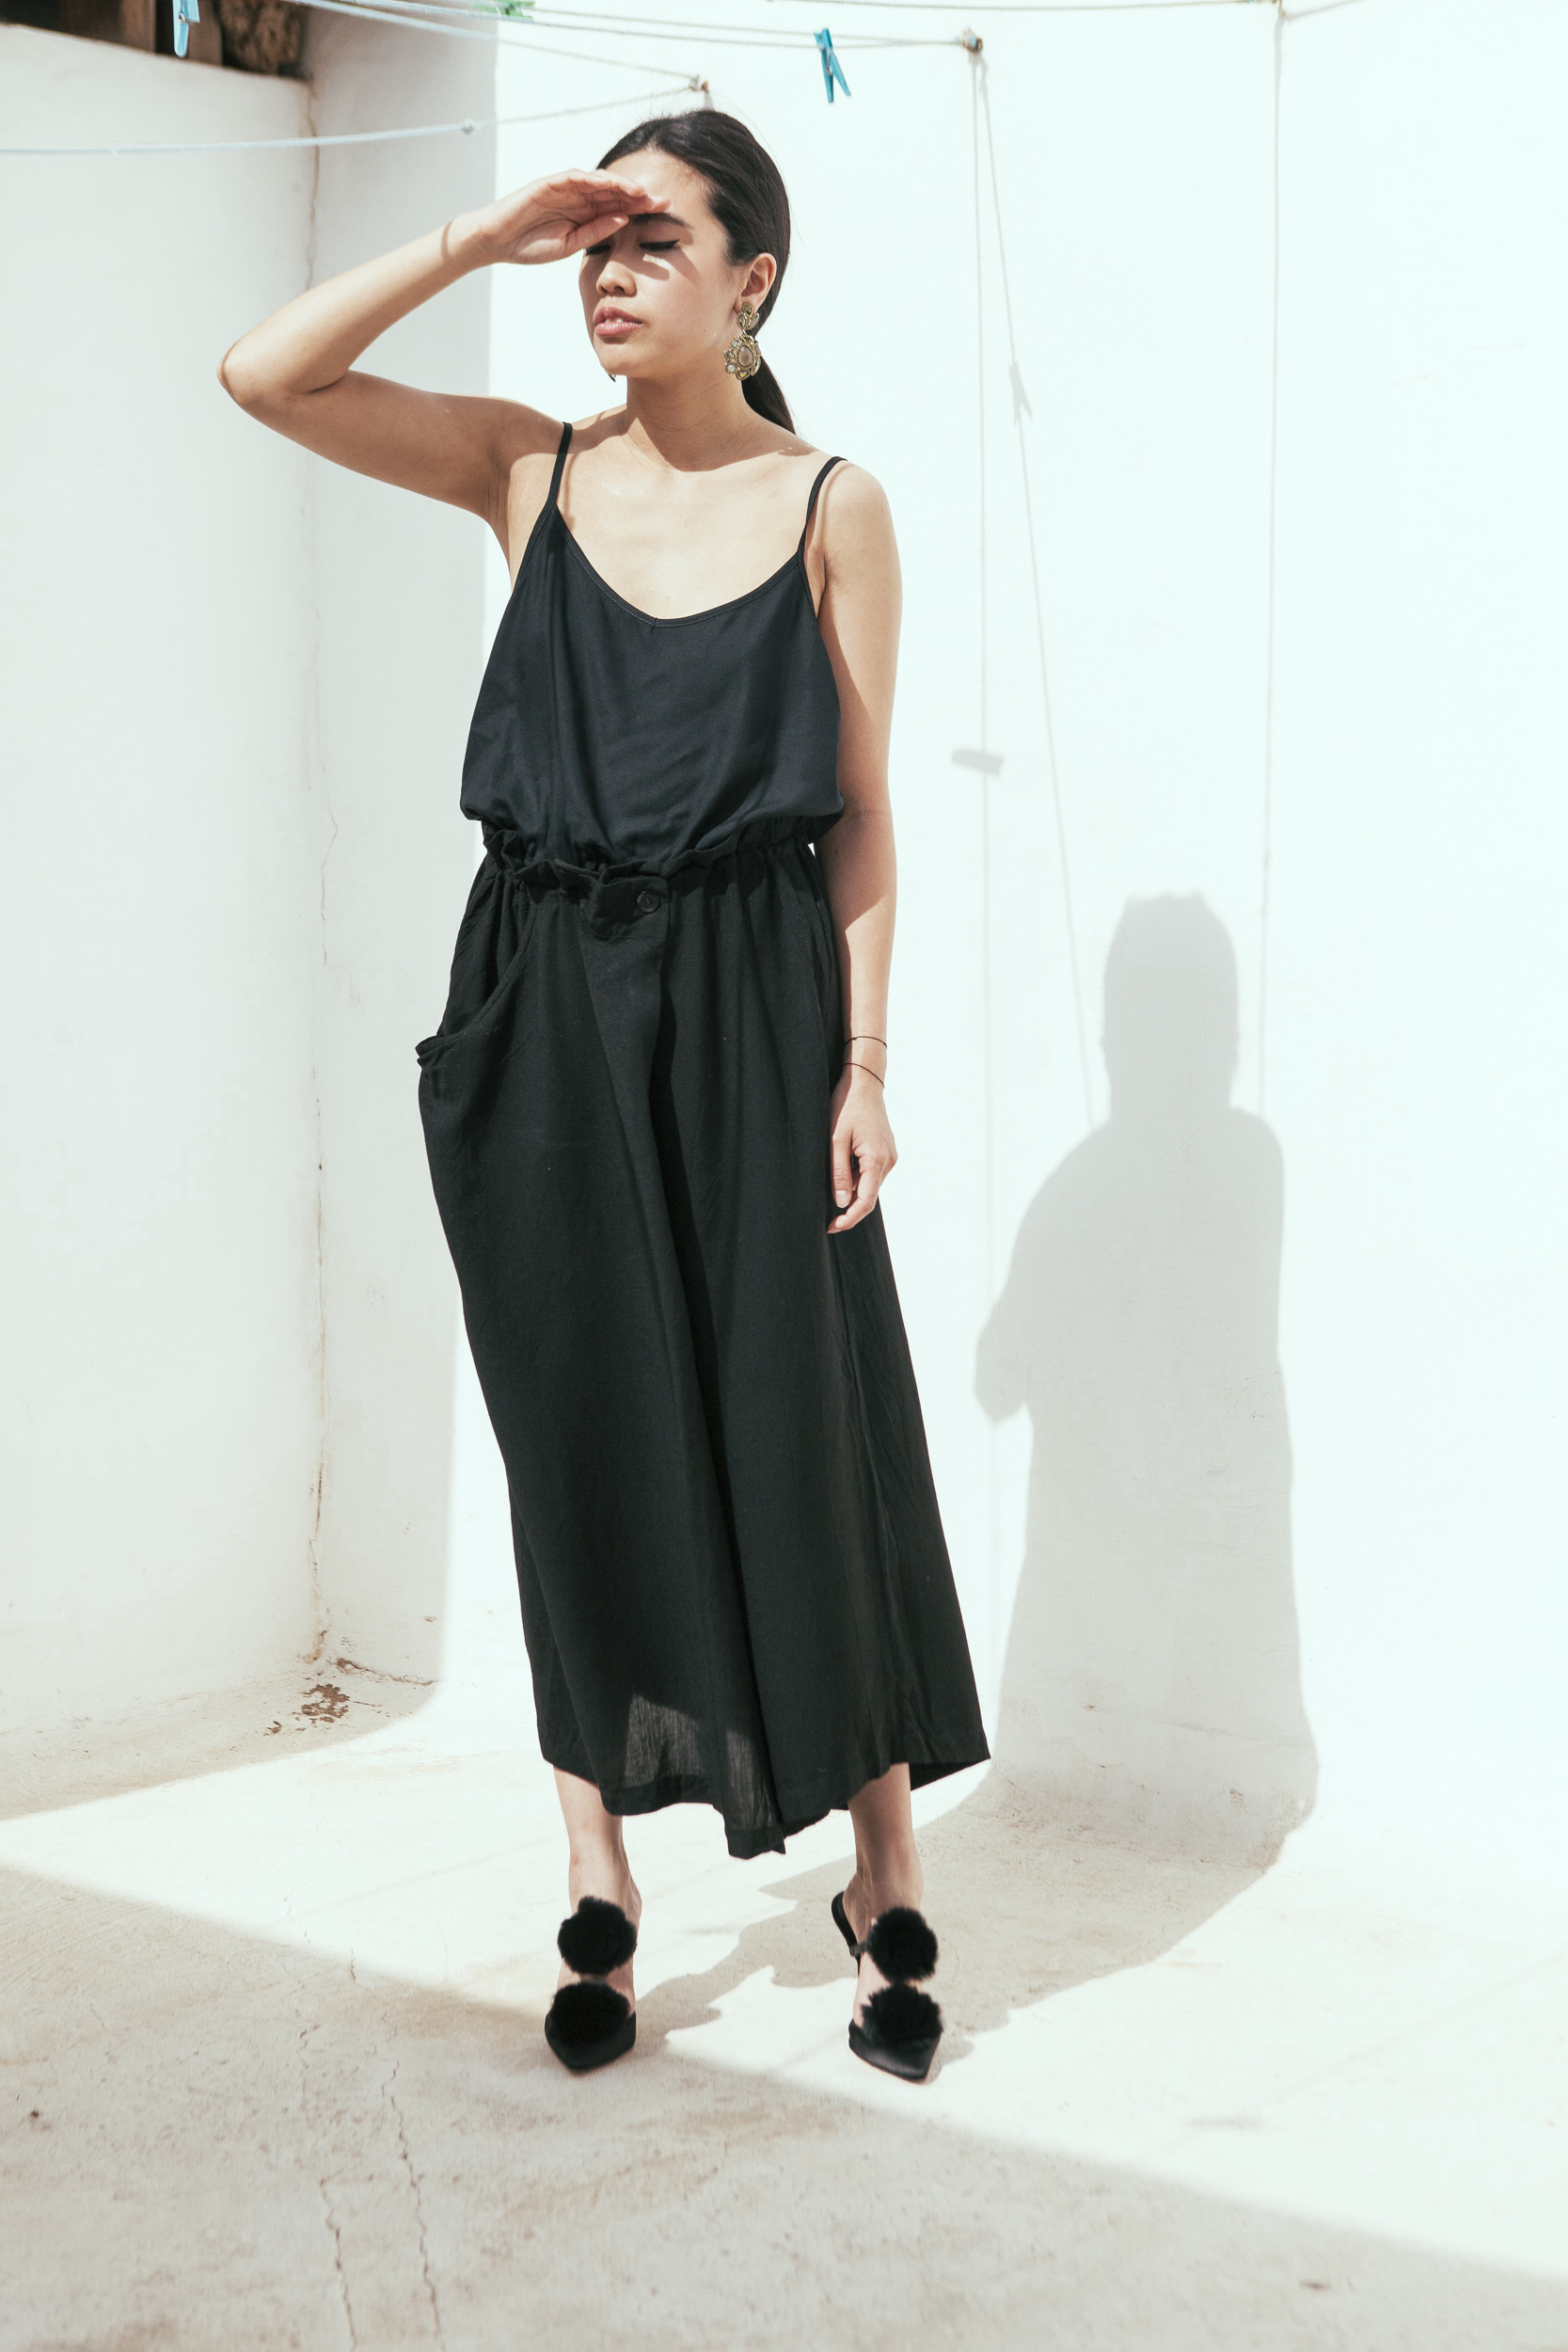 I heart Alice Looks: Black Top, Yohji Yamamoto Pants & Manolo Blahnik Crespo Satin Pumps in Fuerteventura / Spain by Lina Zangers